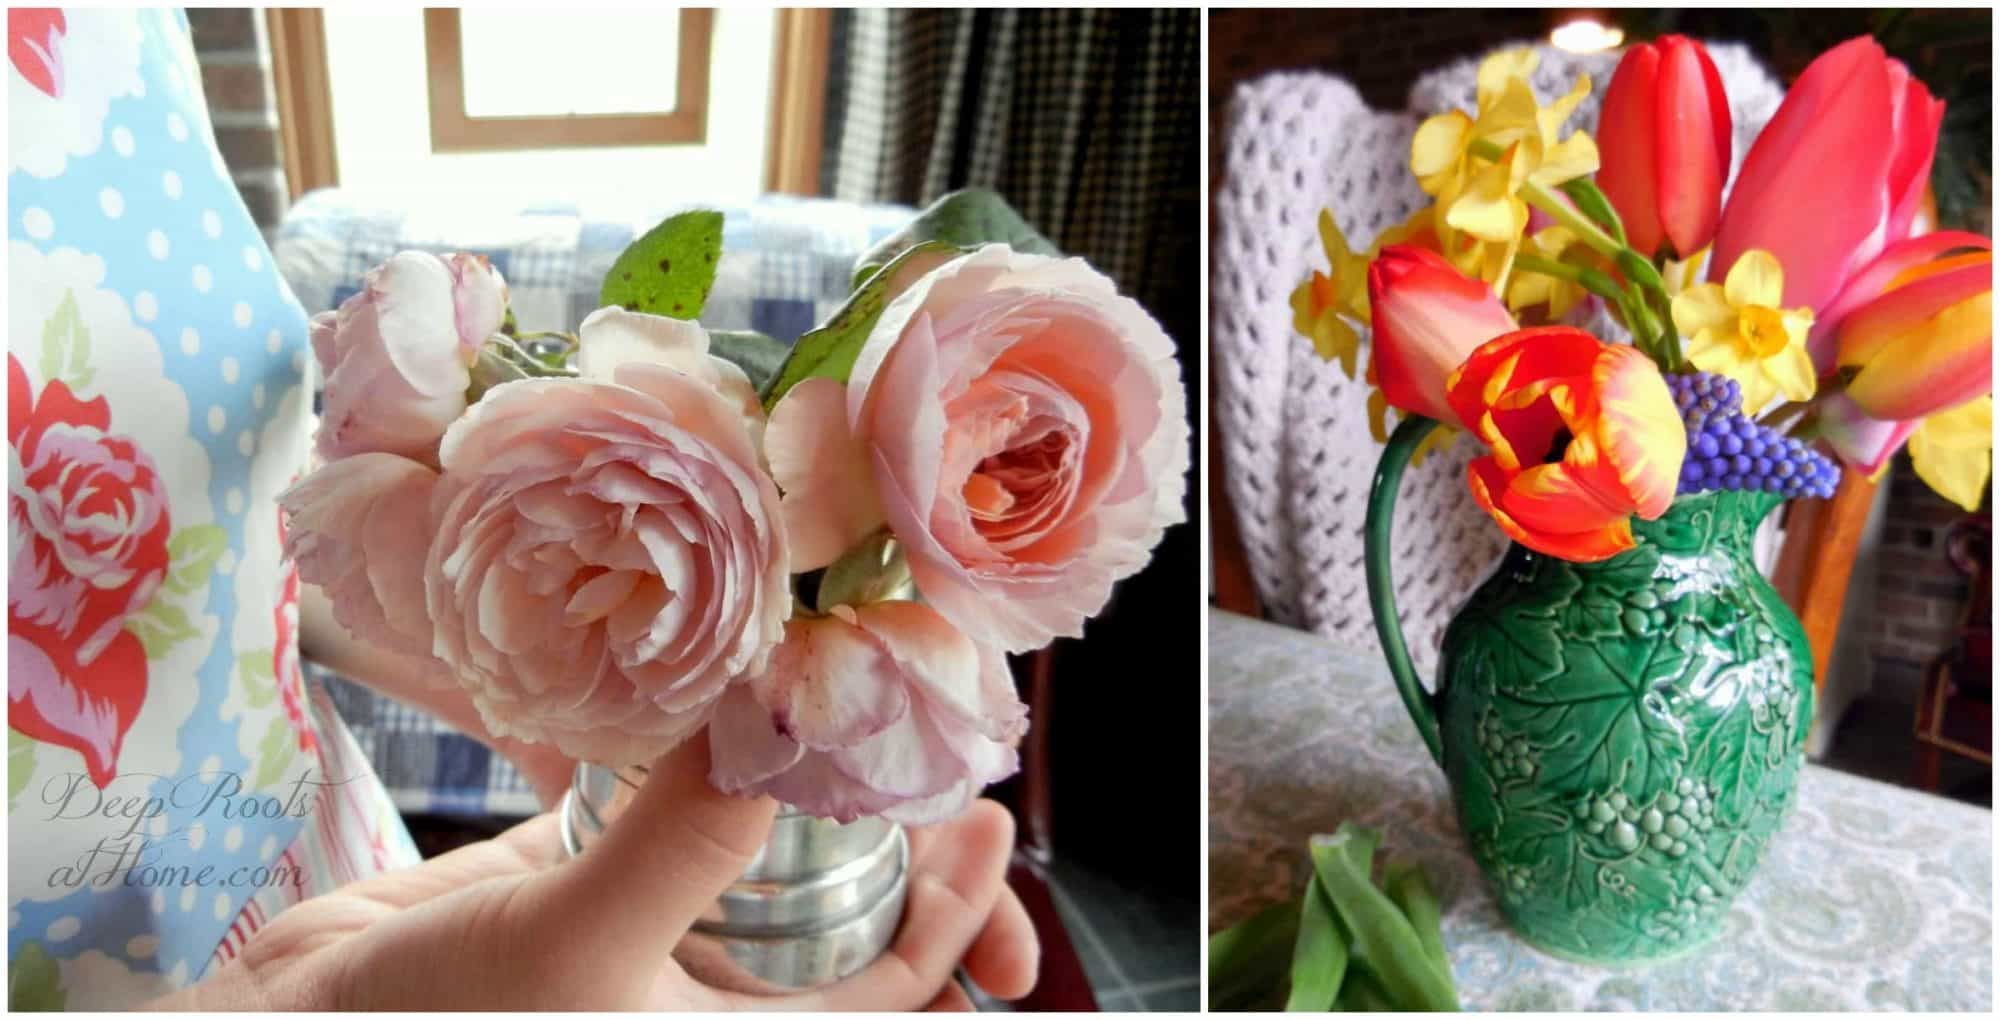 Cut Flowers On Your Table: The Secret To Long-Lasting Bouquets. Wisley roses and tulips and daffodils